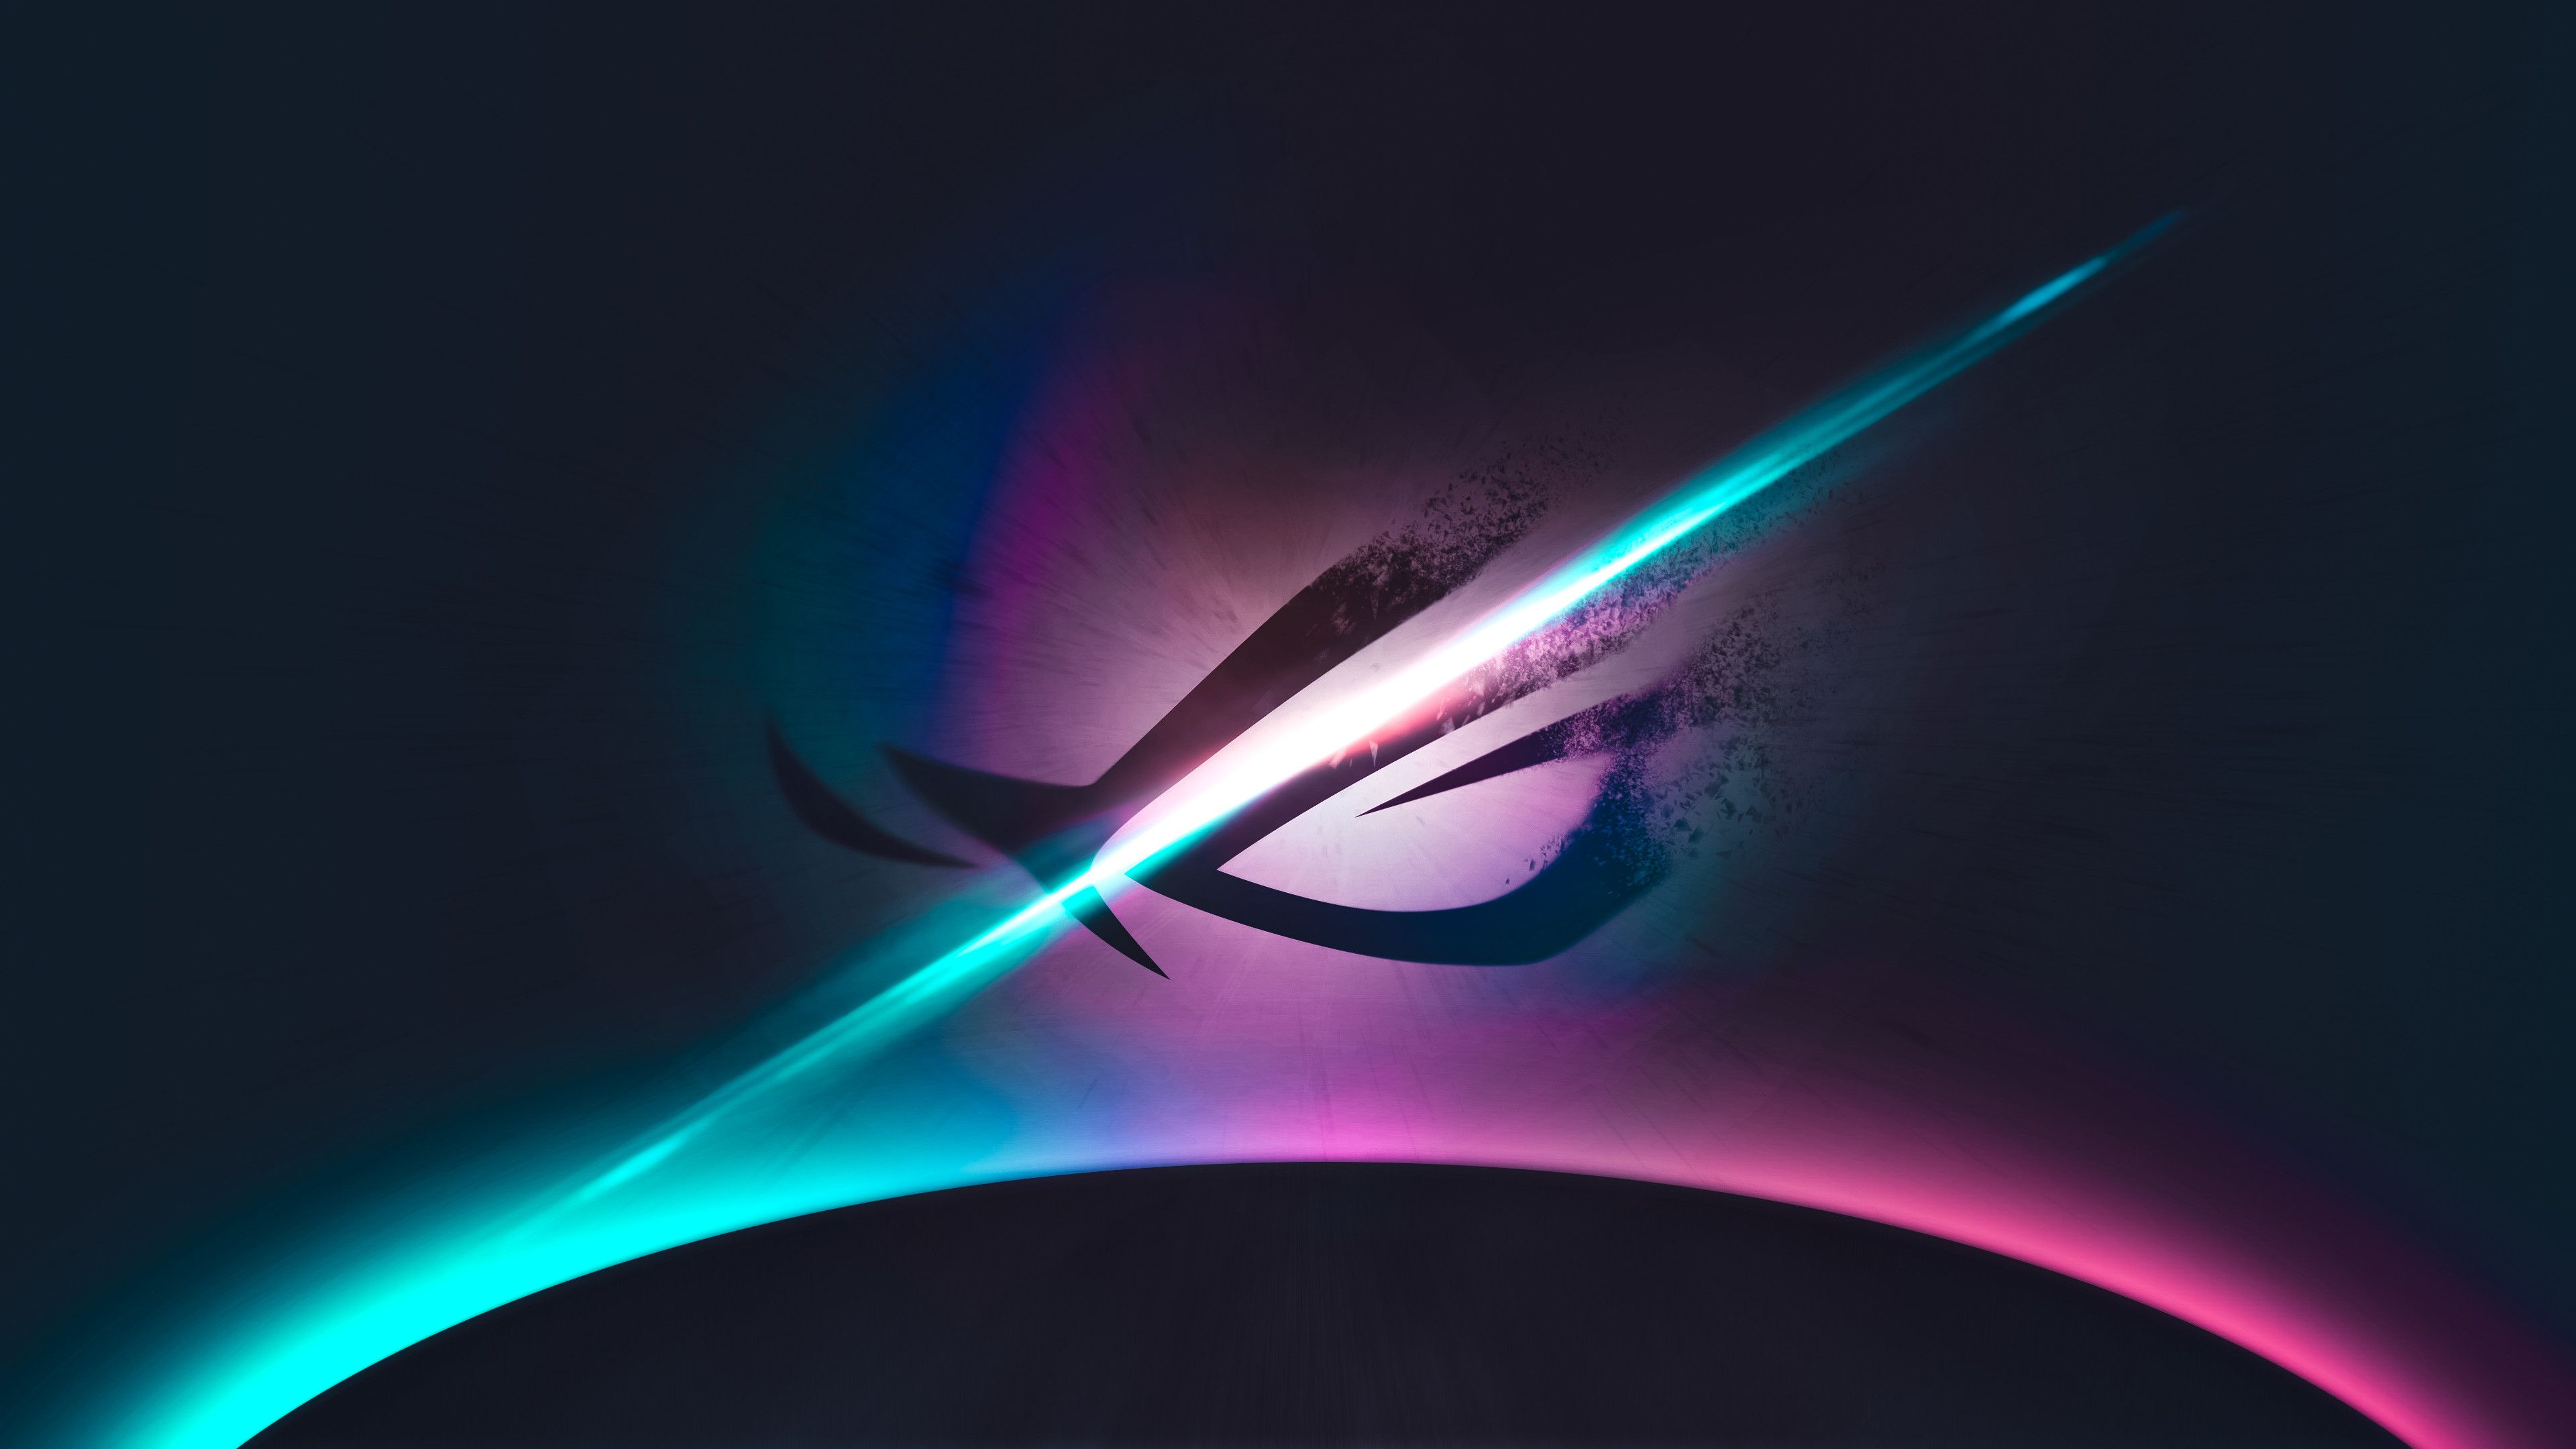 Res 3840x2160 Asus Rog Republic Of Gamers 4k In 2020 Desktop Wallpaper Nature Desktop Wallpaper Spring Desktop Wallpaper